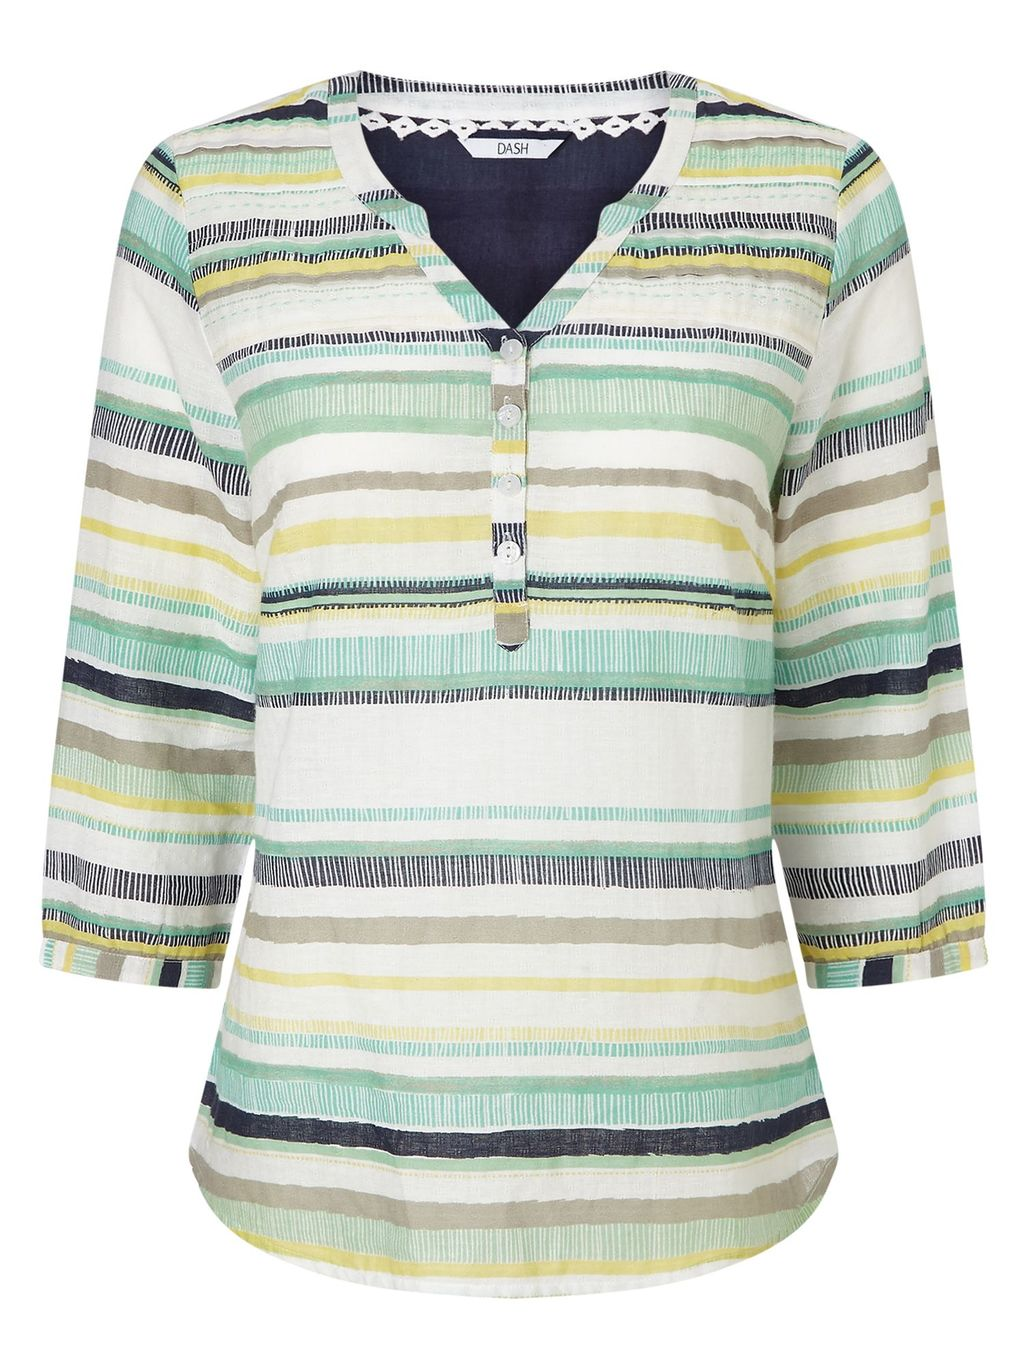 Multi Stripe Print Blouse, Multi Coloured - neckline: v-neck; pattern: horizontal stripes; predominant colour: ivory/cream; secondary colour: pistachio; occasions: casual; length: standard; style: top; fibres: cotton - stretch; fit: body skimming; sleeve length: 3/4 length; sleeve style: standard; pattern type: fabric; pattern size: light/subtle; texture group: woven light midweight; multicoloured: multicoloured; season: s/s 2016; wardrobe: highlight